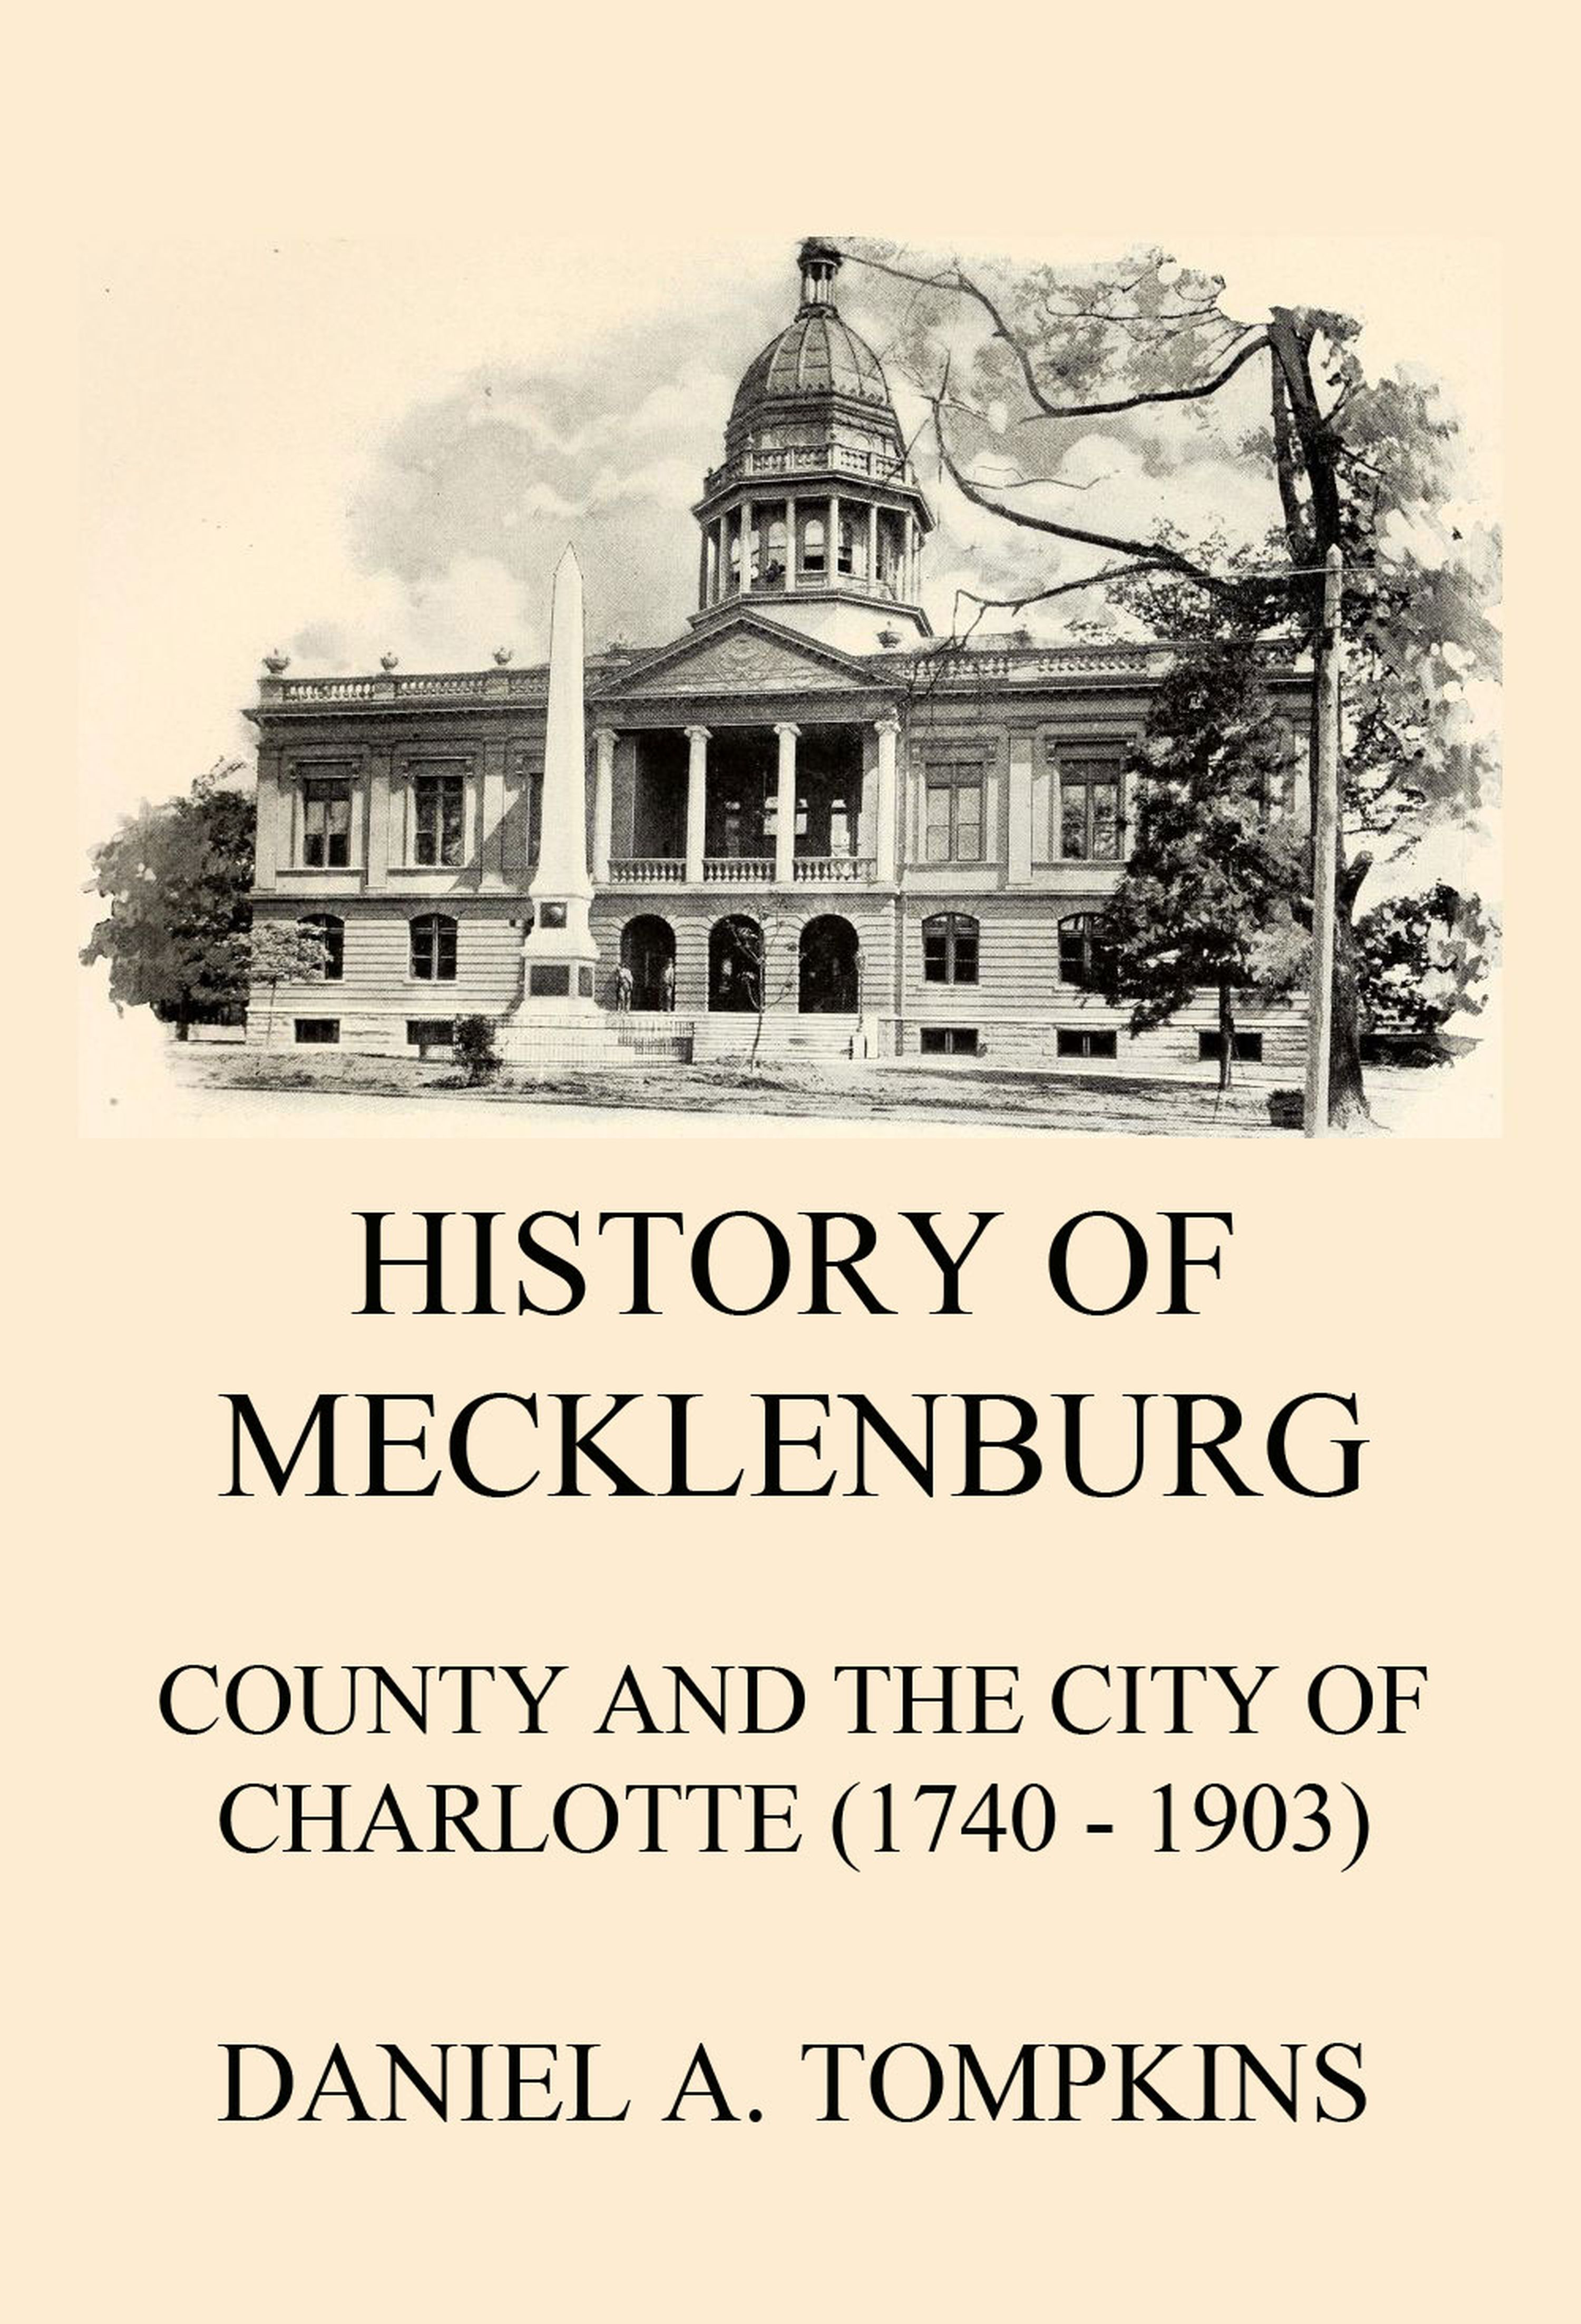 Daniel Augustus Tompkins History of Mecklenburg County and the City of Charlotte (1740 - 1903) shimon gibson the cave of john the baptist the stunning archaeological discovery that has redefined christian history